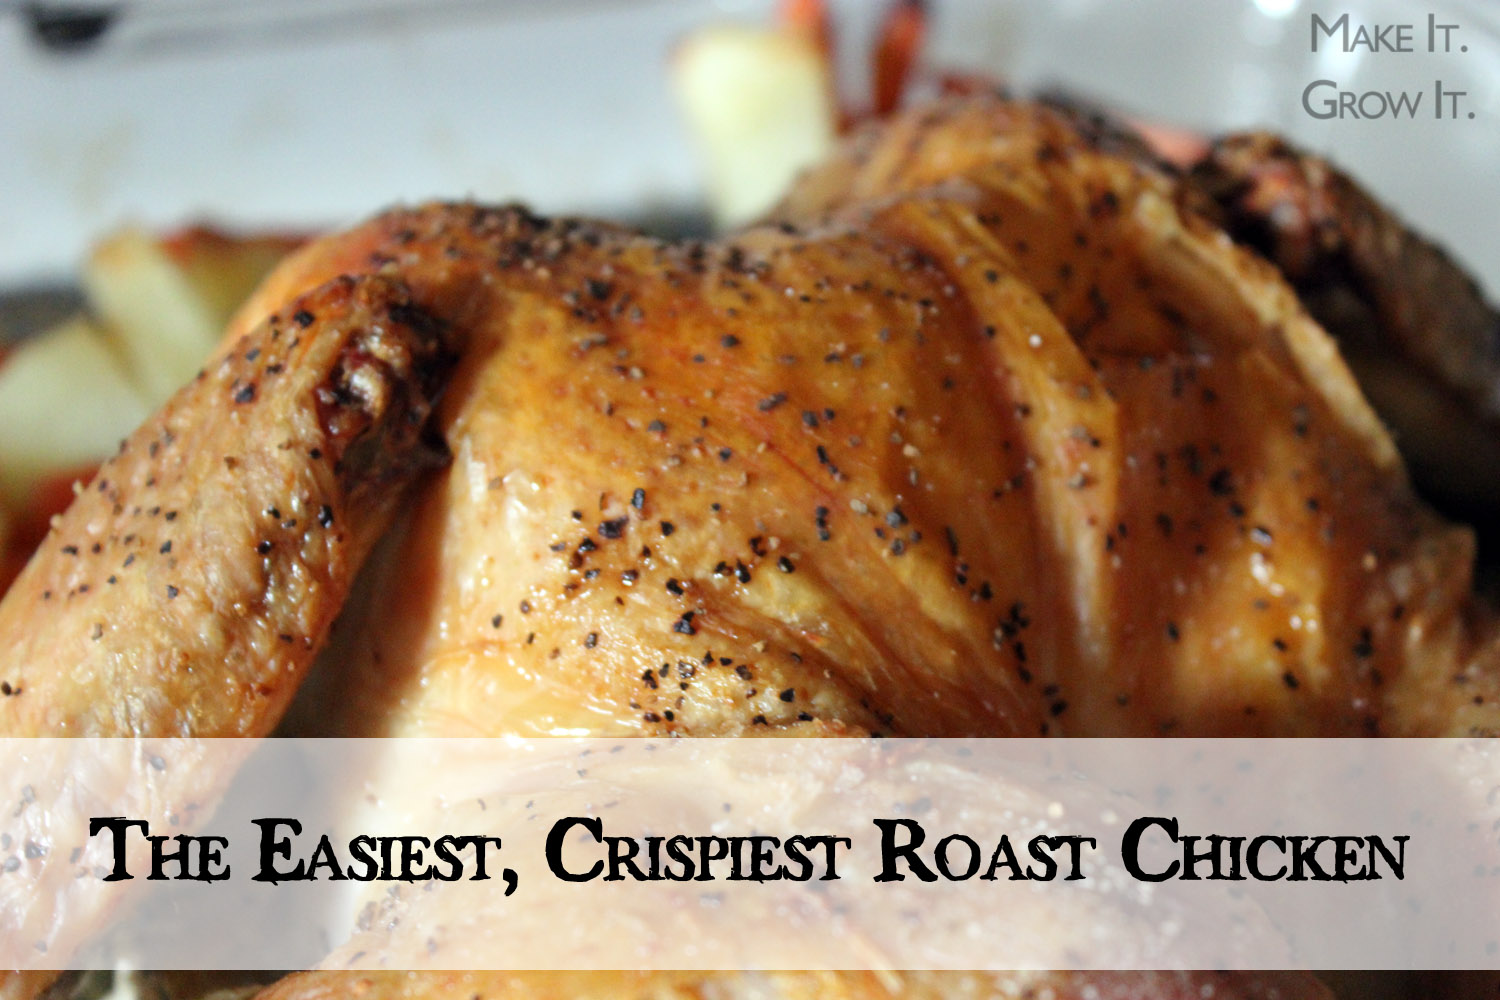 The Easiest, Crispiest Roast Chicken